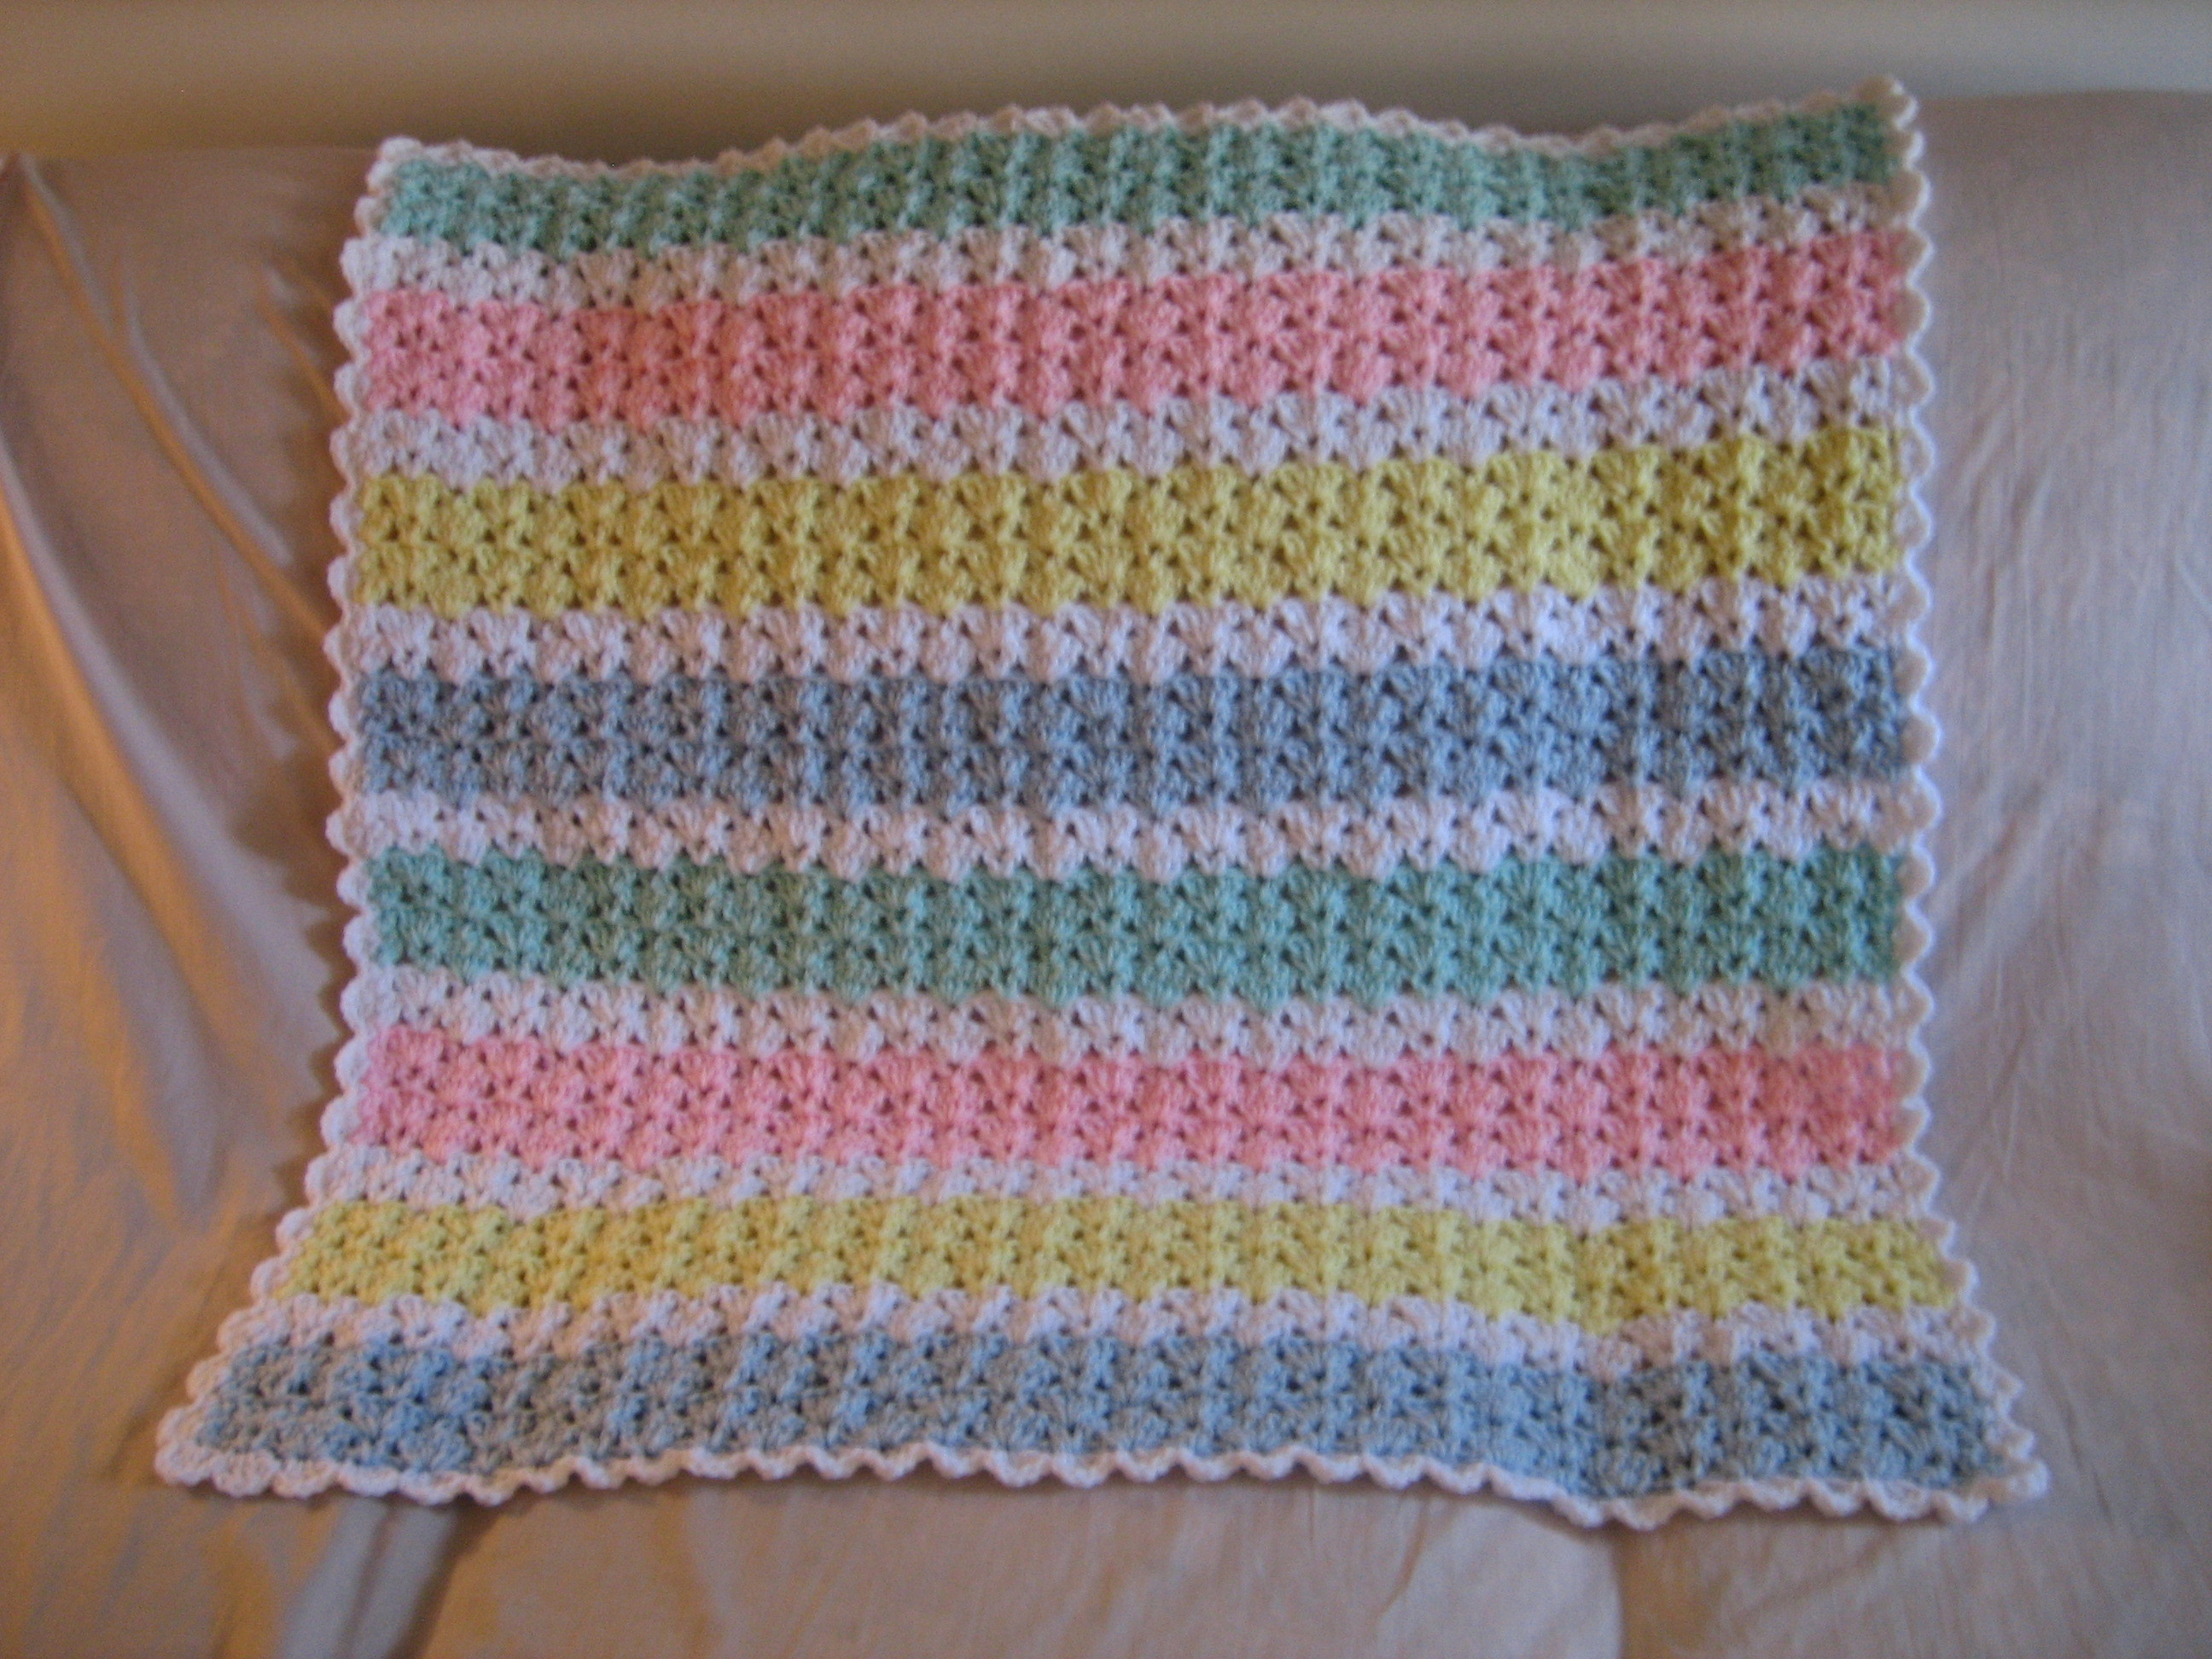 Awesome Crochet Baby Blanket Patterns Free Easy Knitting and Crochet Patterns Of Adorable 46 Ideas Knitting and Crochet Patterns